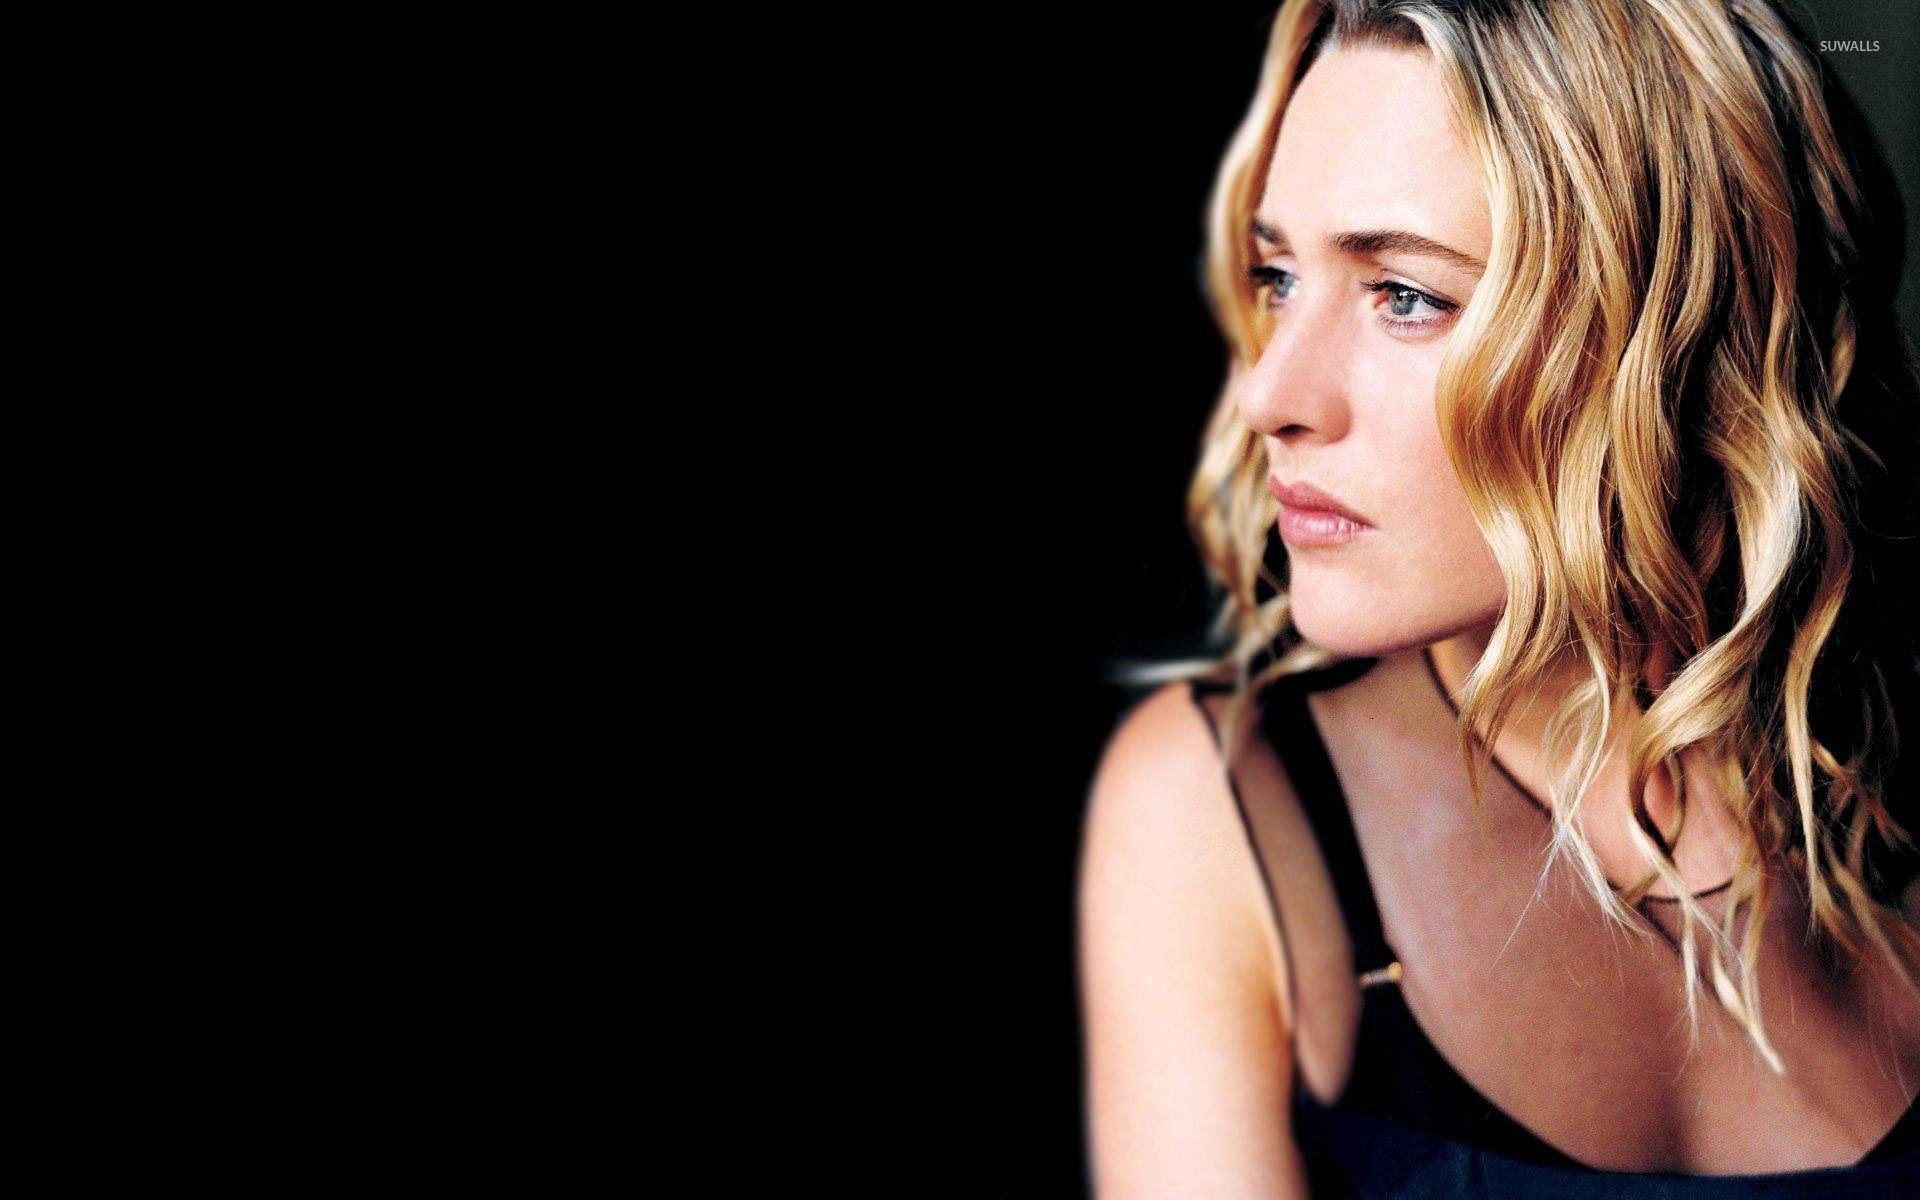 Kate Winslet wallpaper - Celebrity wallpapers - #3919